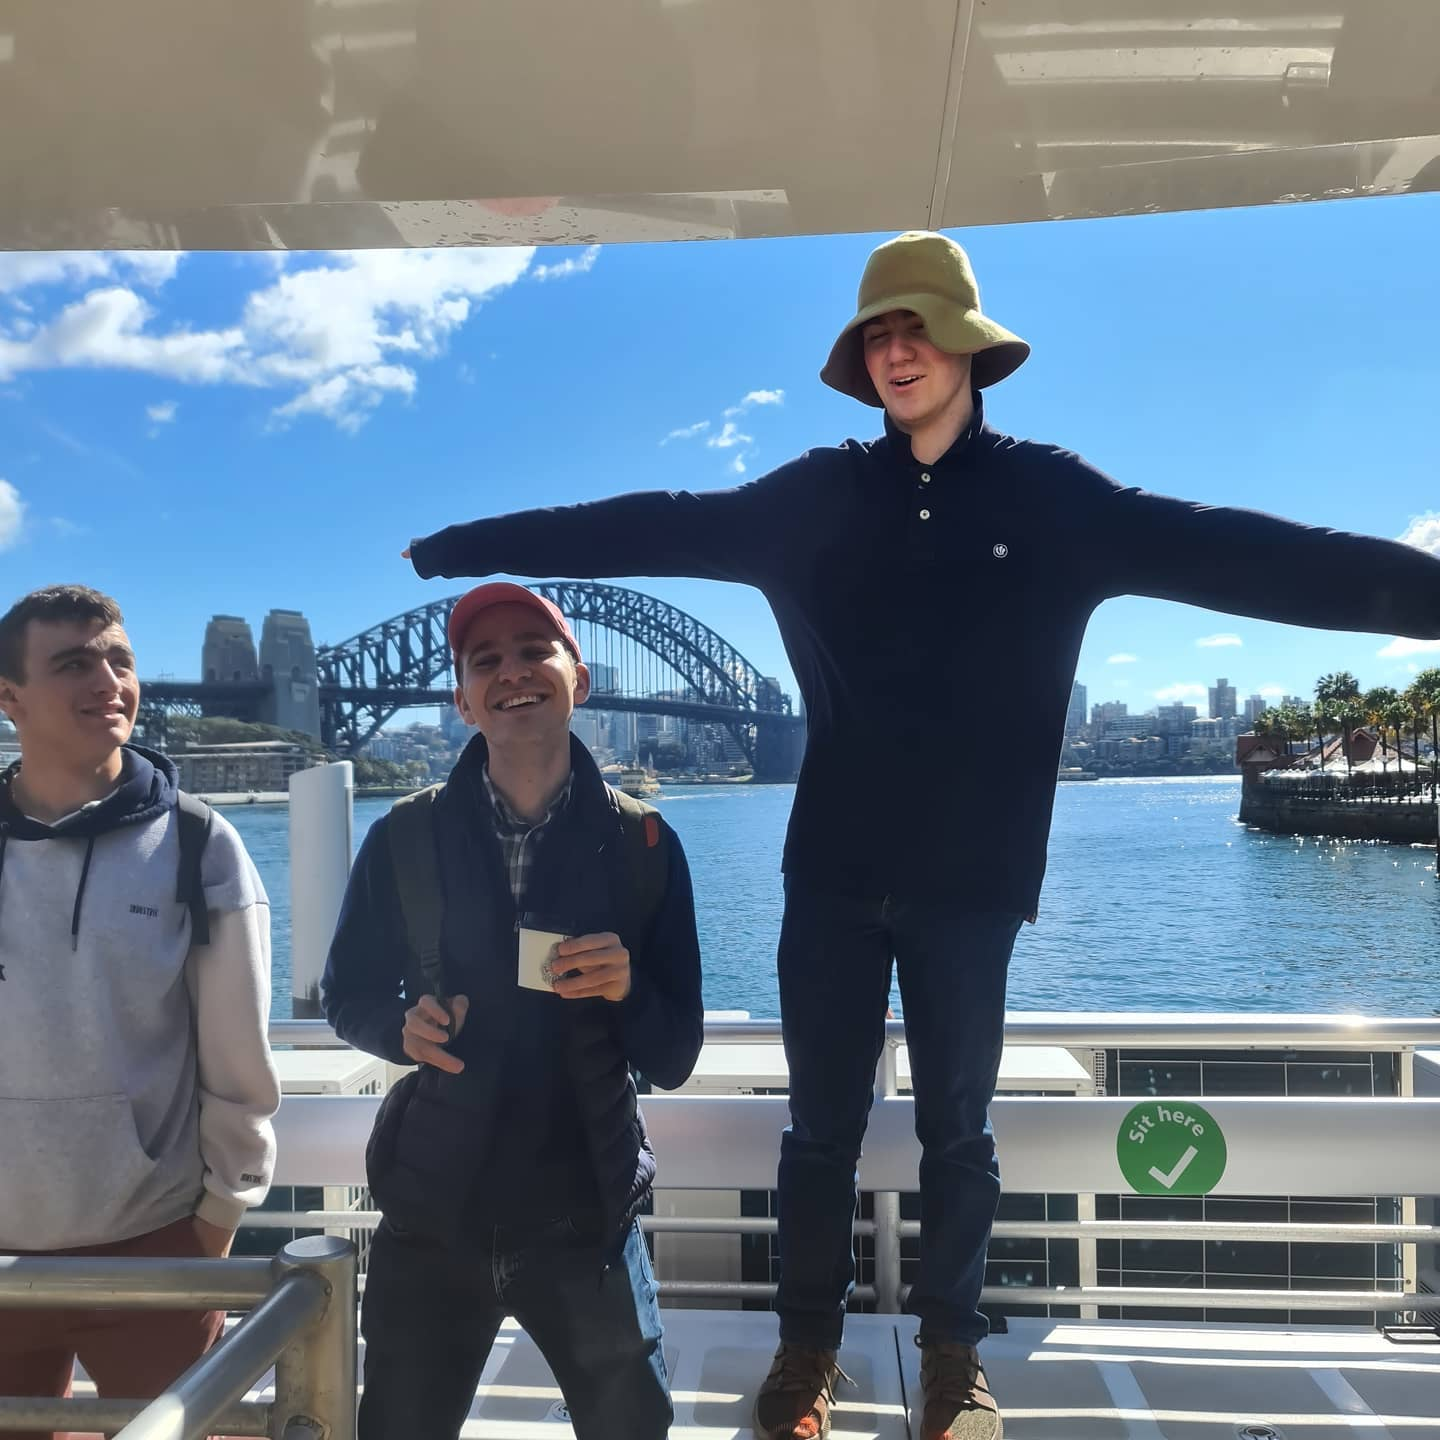 Manly ferry for young adults with mild disabilities